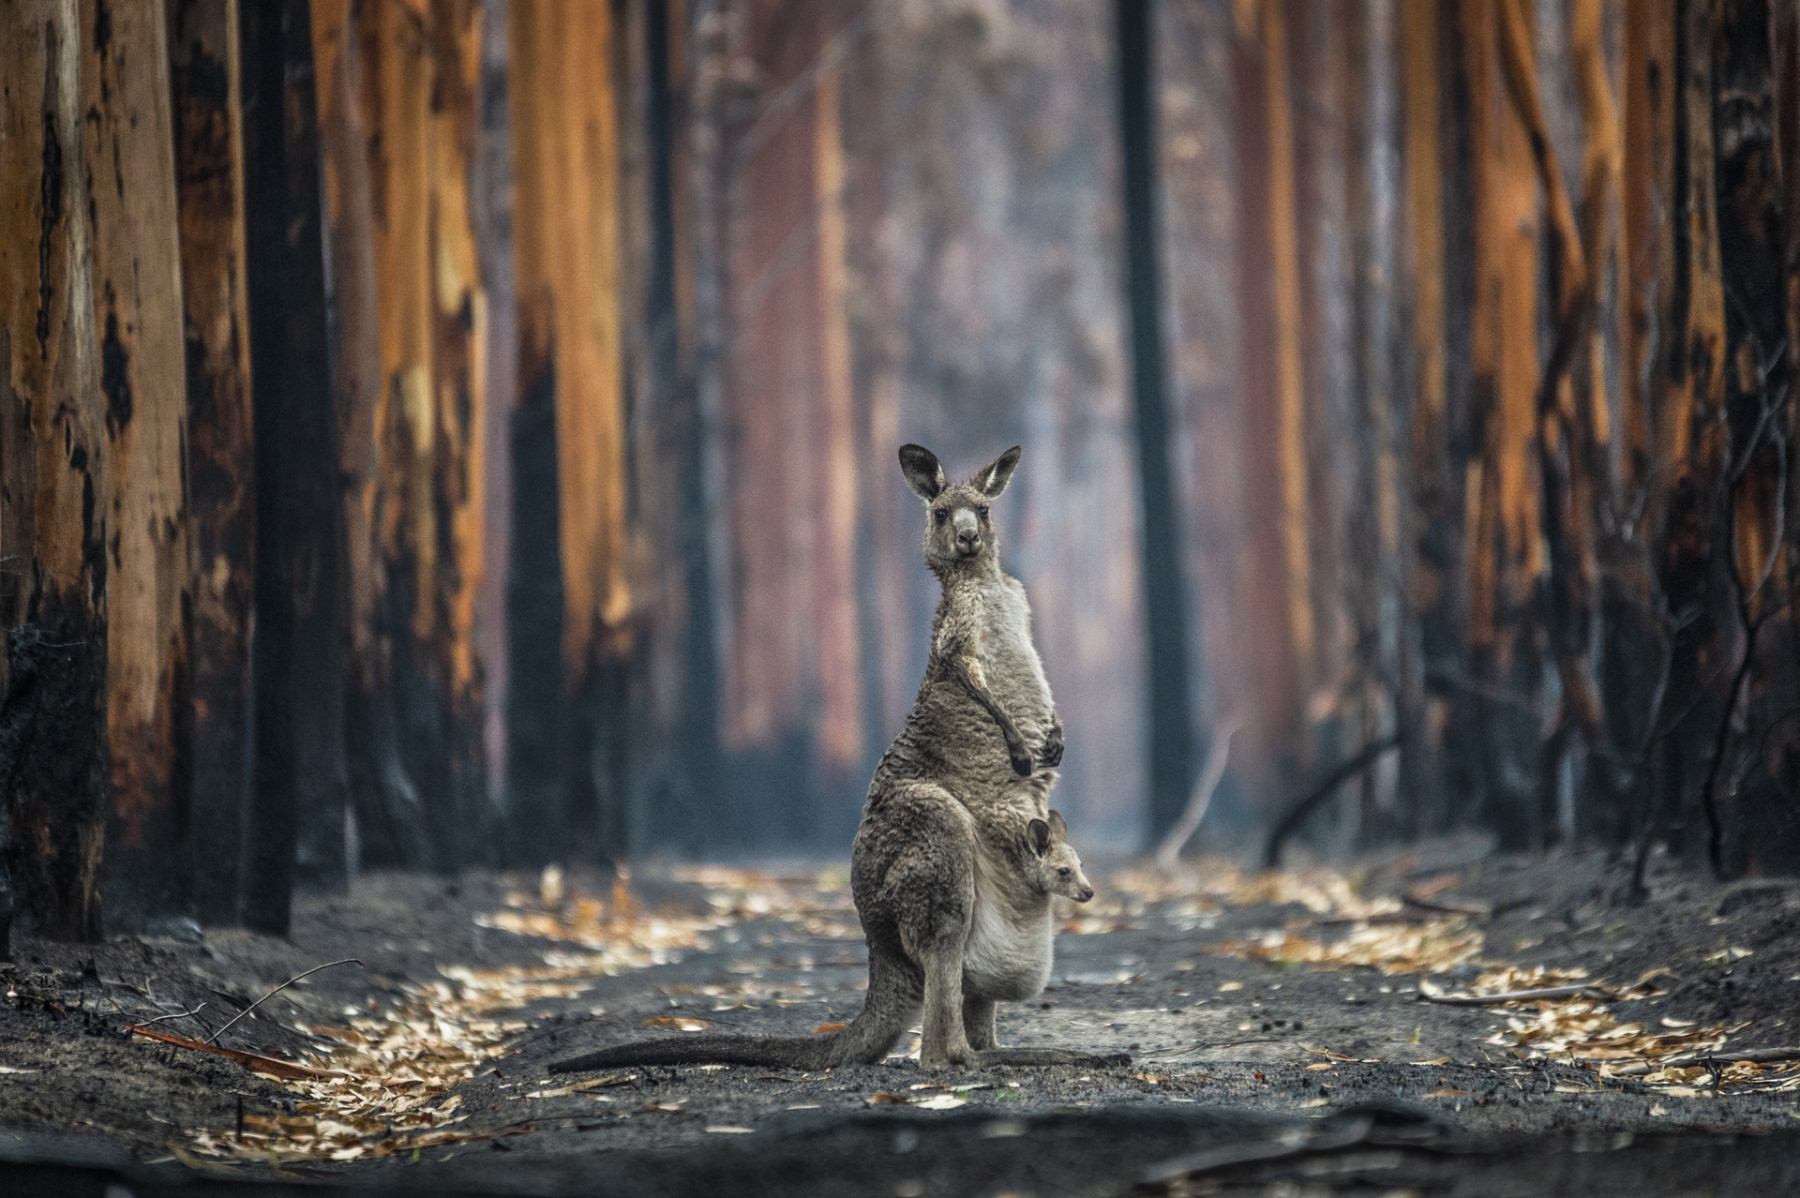 Out of the ashes. A kangaroo and her joey stand in a burned-out eucalyptus plantation after the cataclysmic 2019-2020 bushfires. Australia. Jo-Anne McArthur